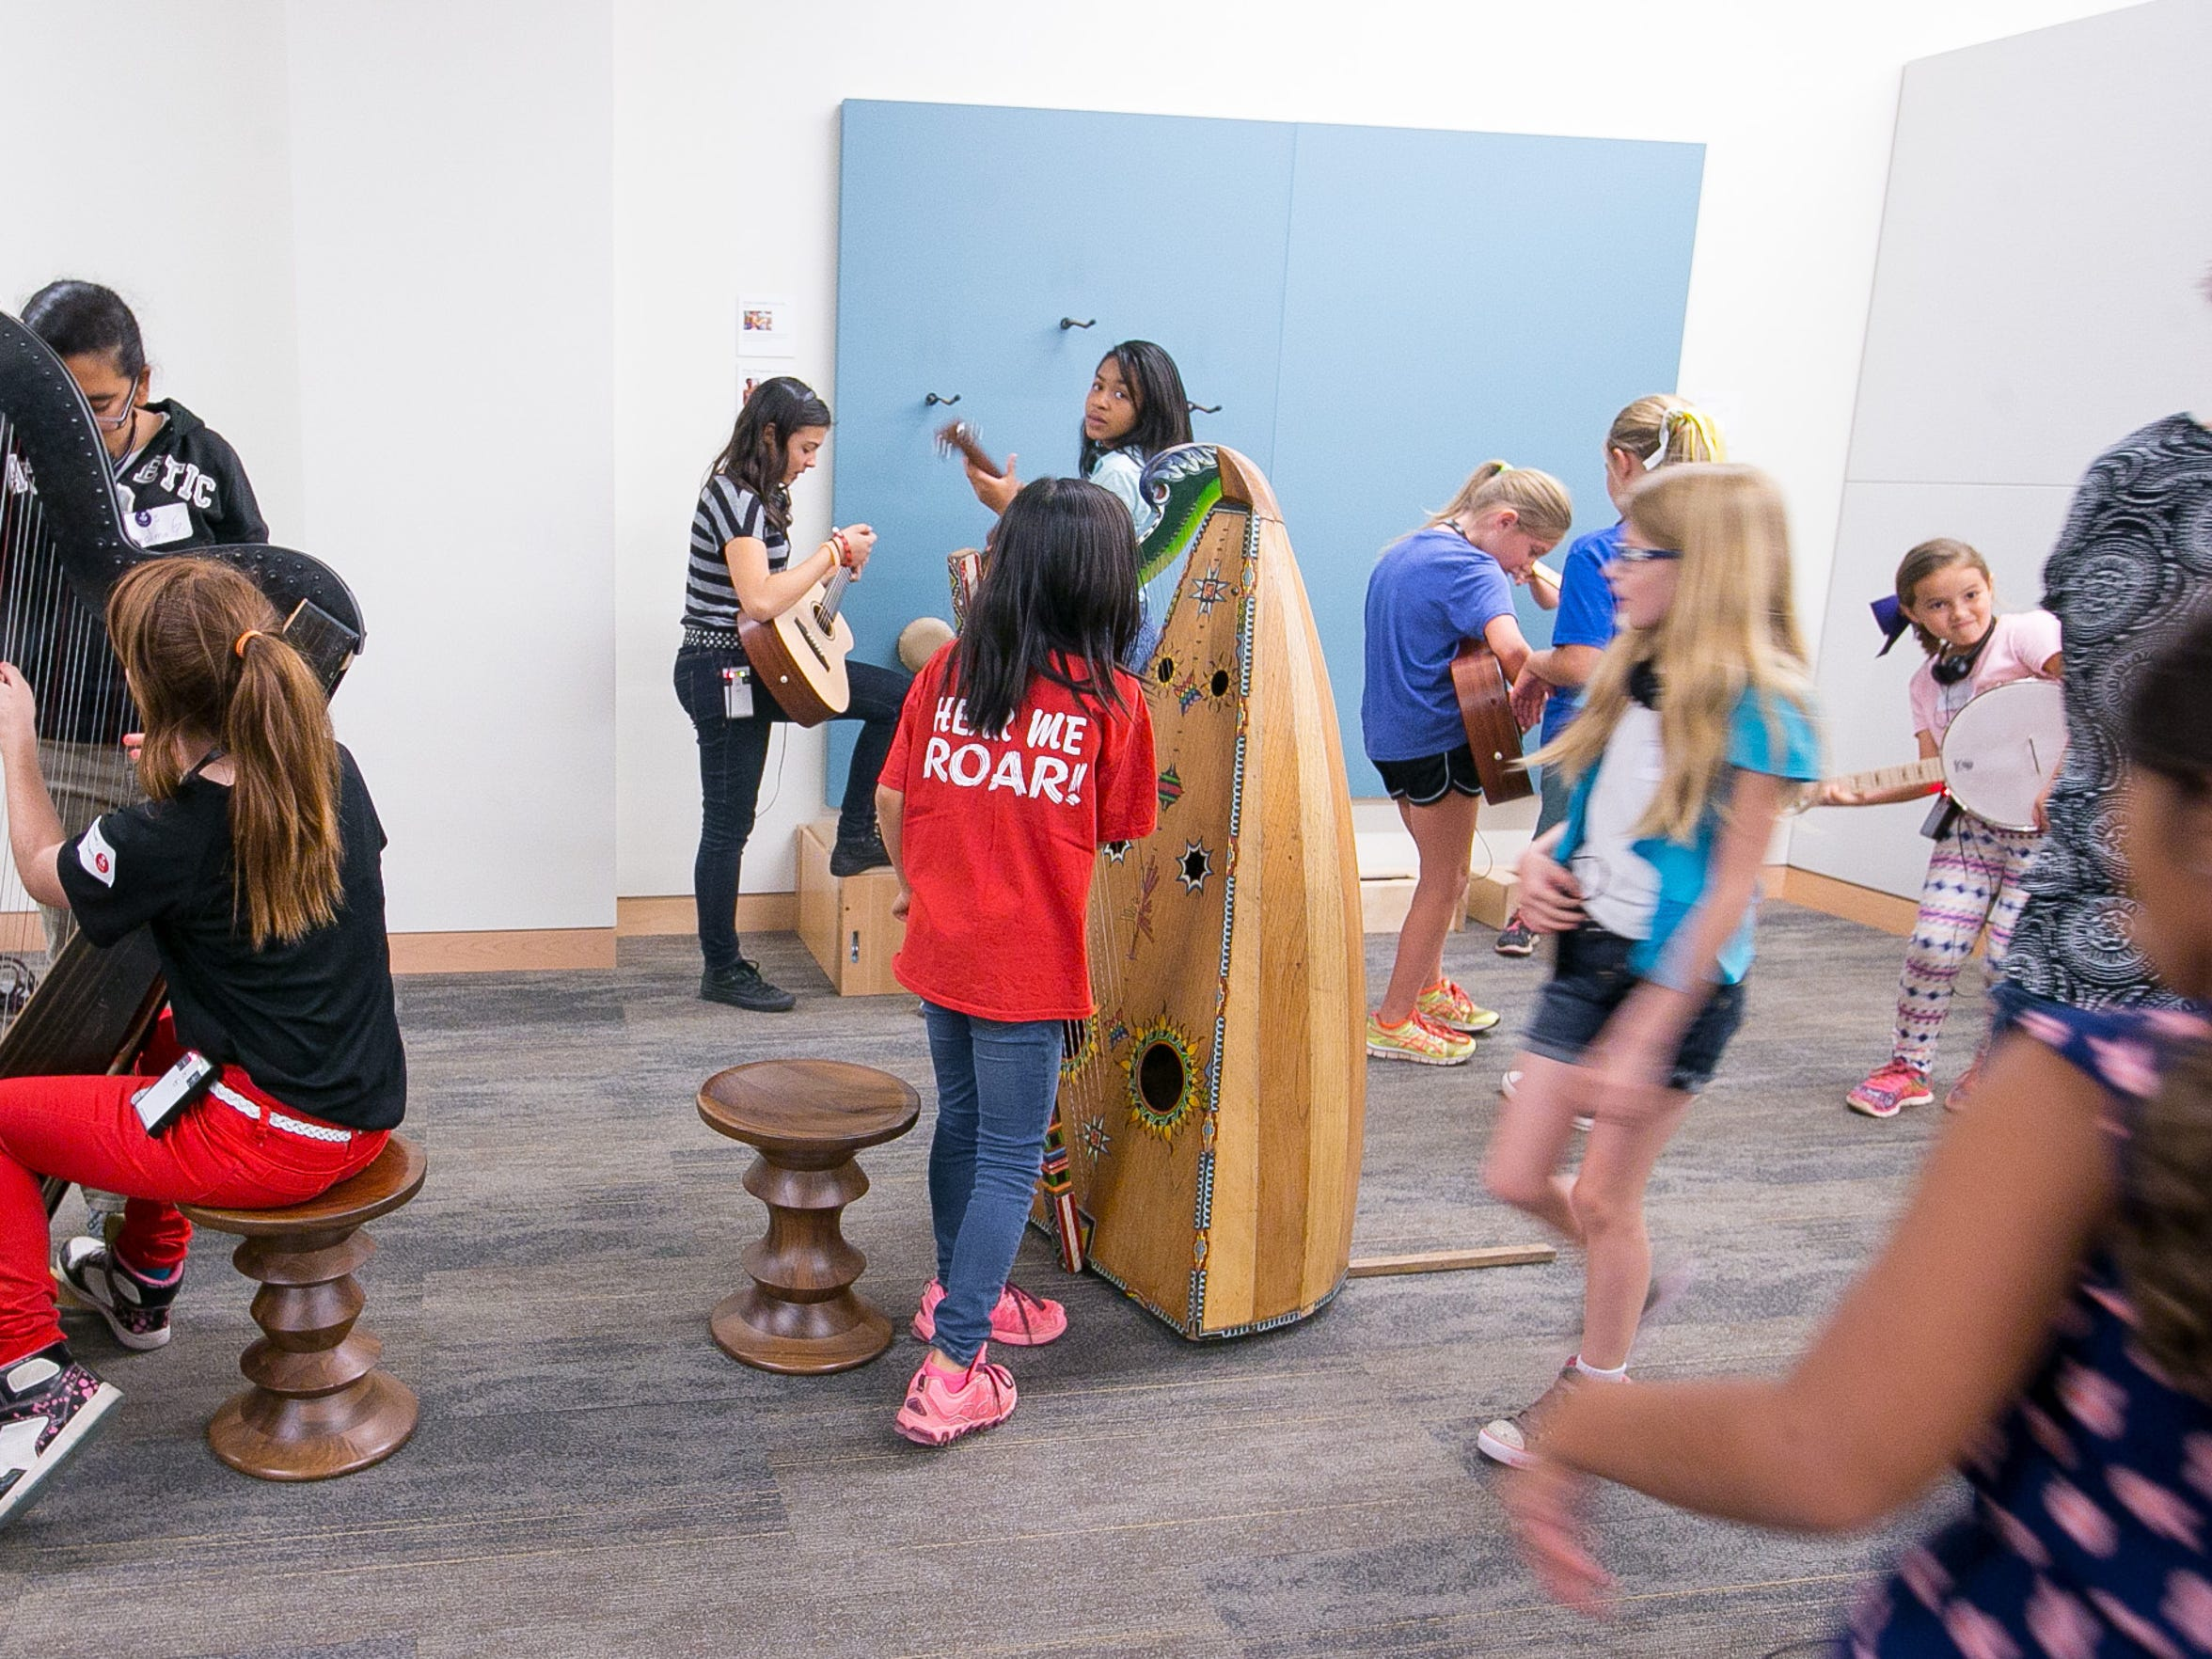 Children on a field trip play with various instruments